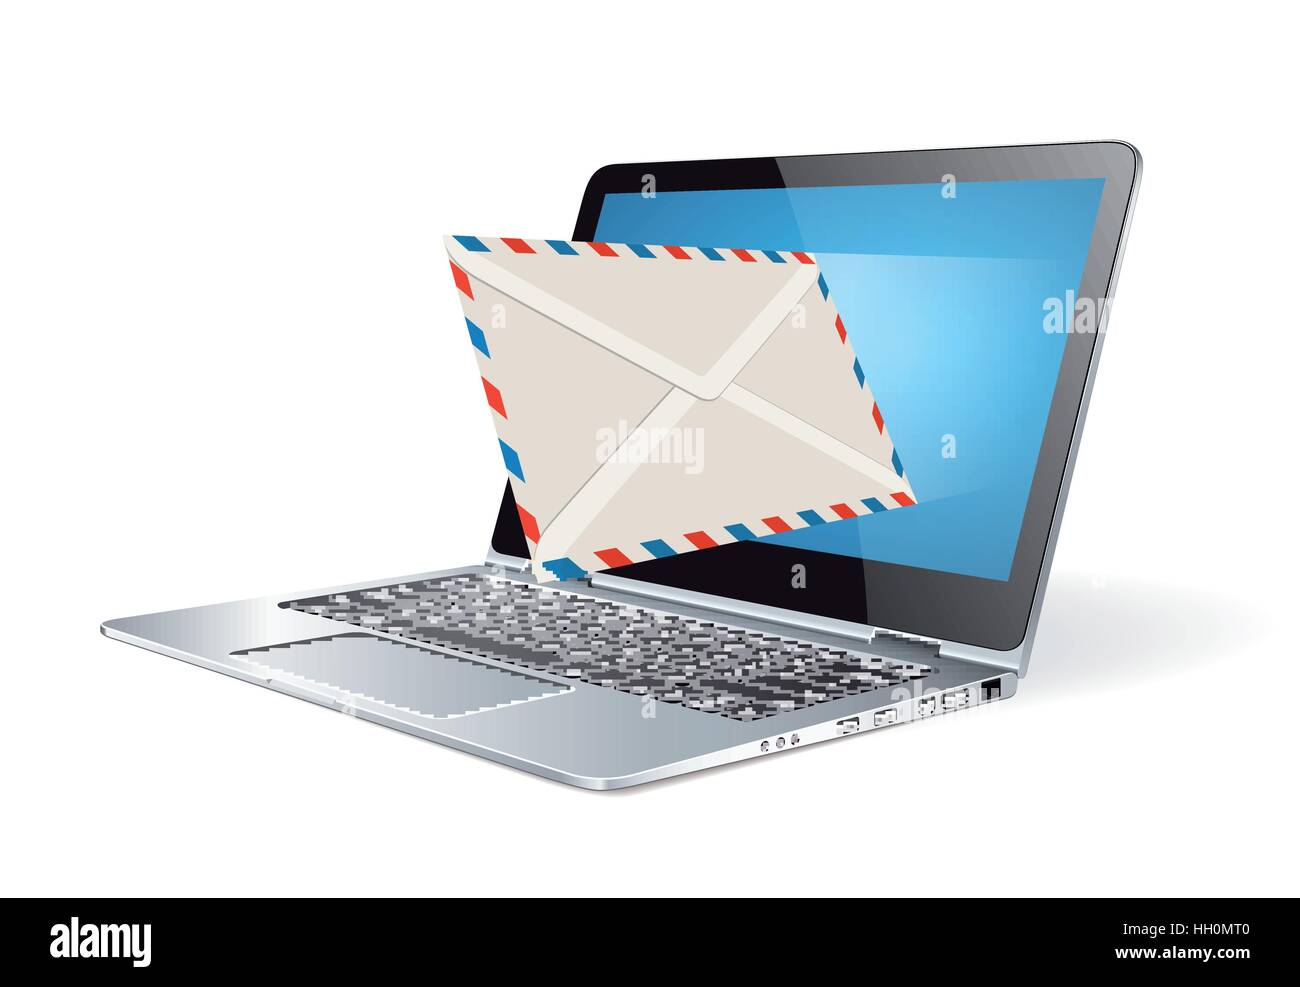 Newsletter - e-mail marketing concept - Stock Image